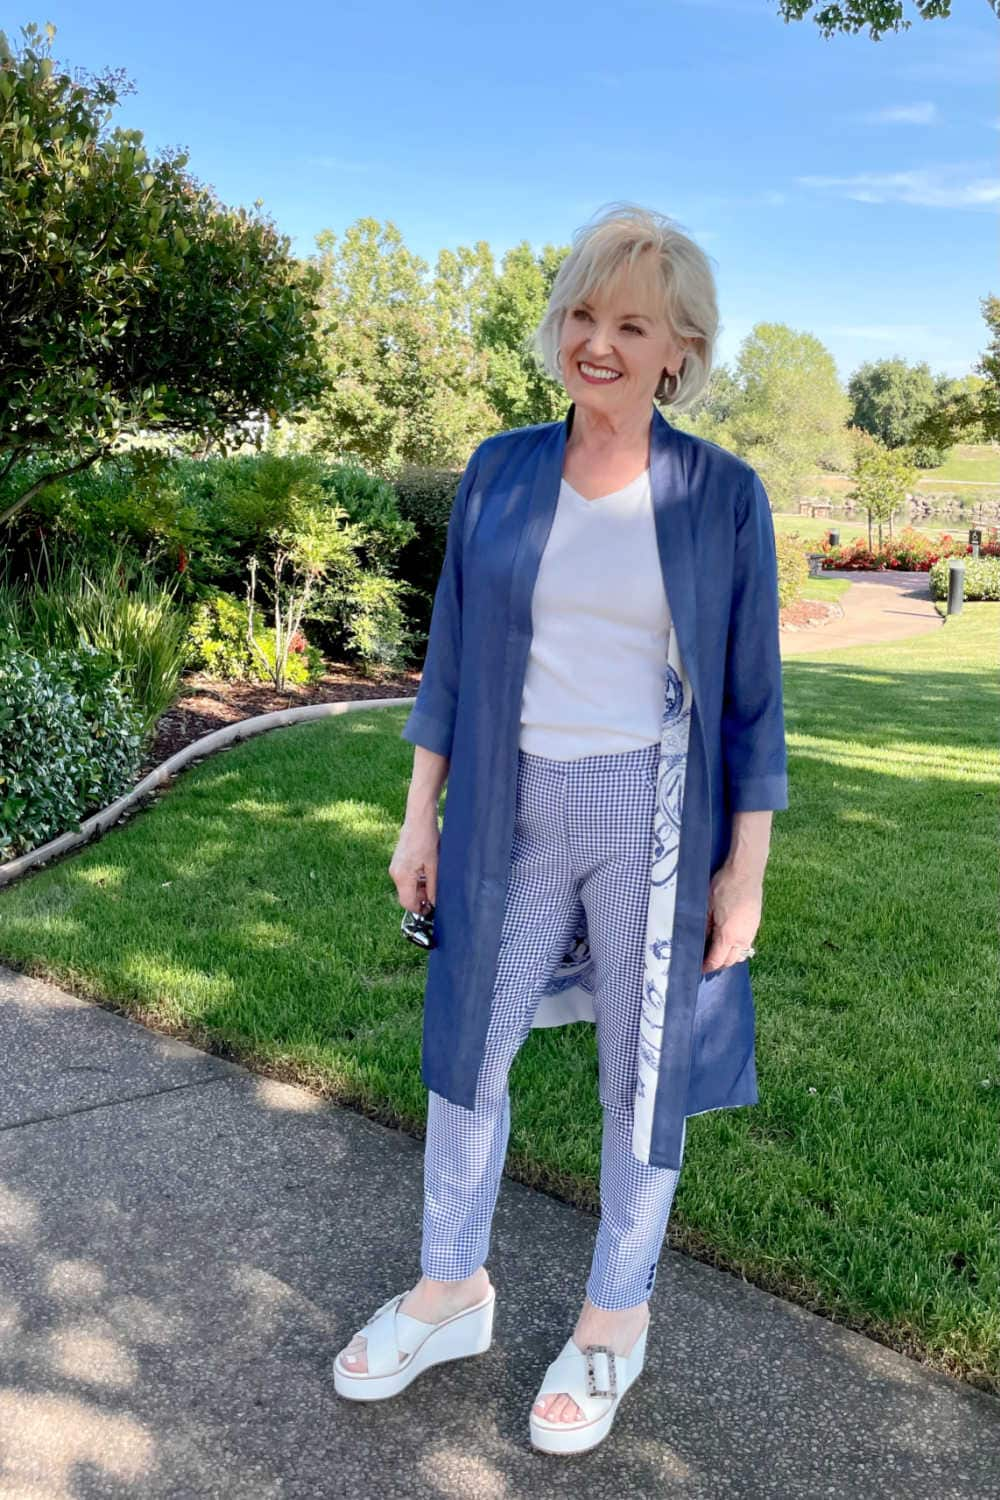 blond woman wearign blue duster and plaind pants with white shoes